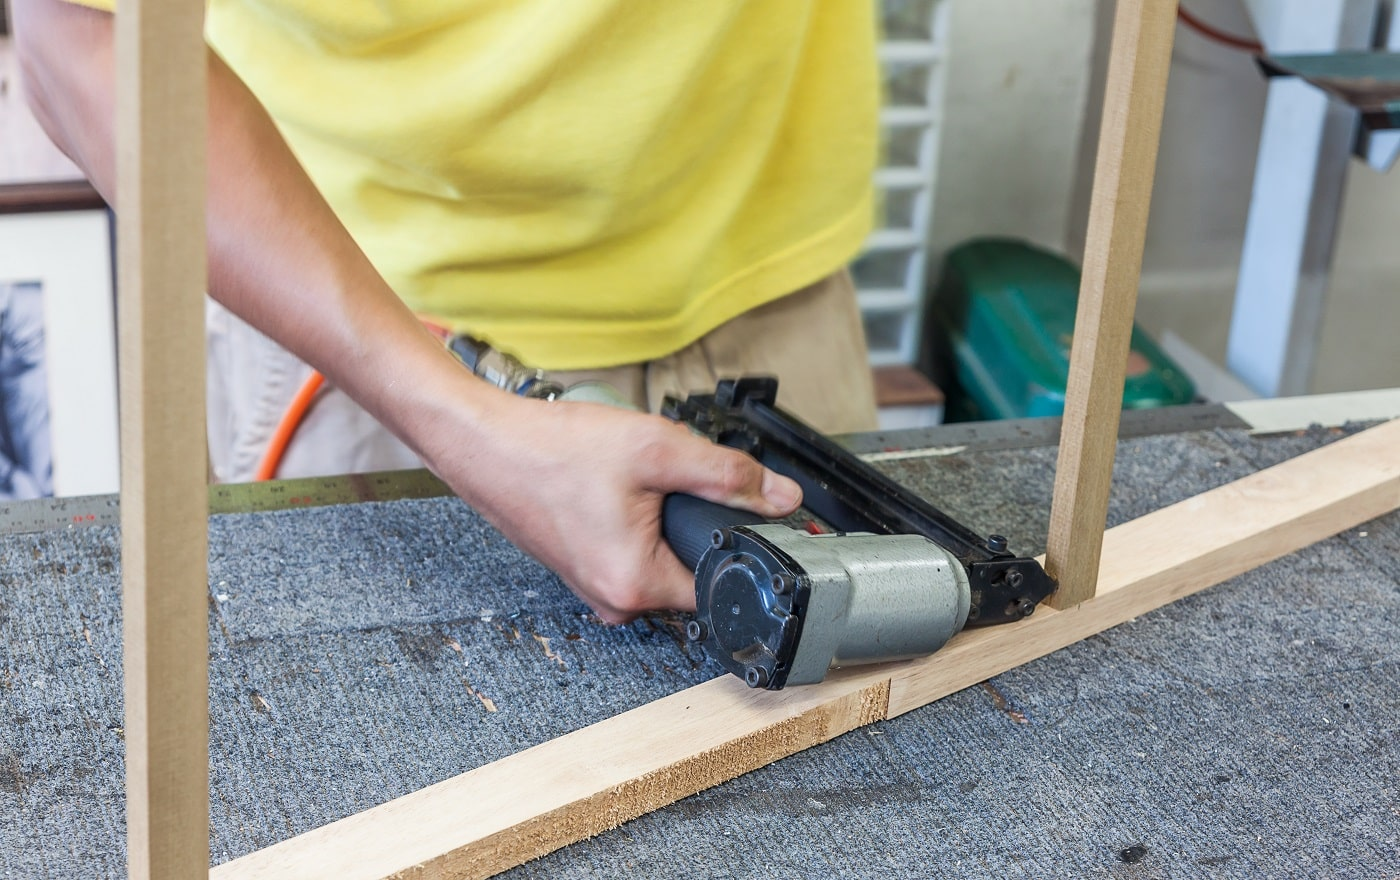 Worker using air nailer shooting nail into log for strengthen holding of wooden frame